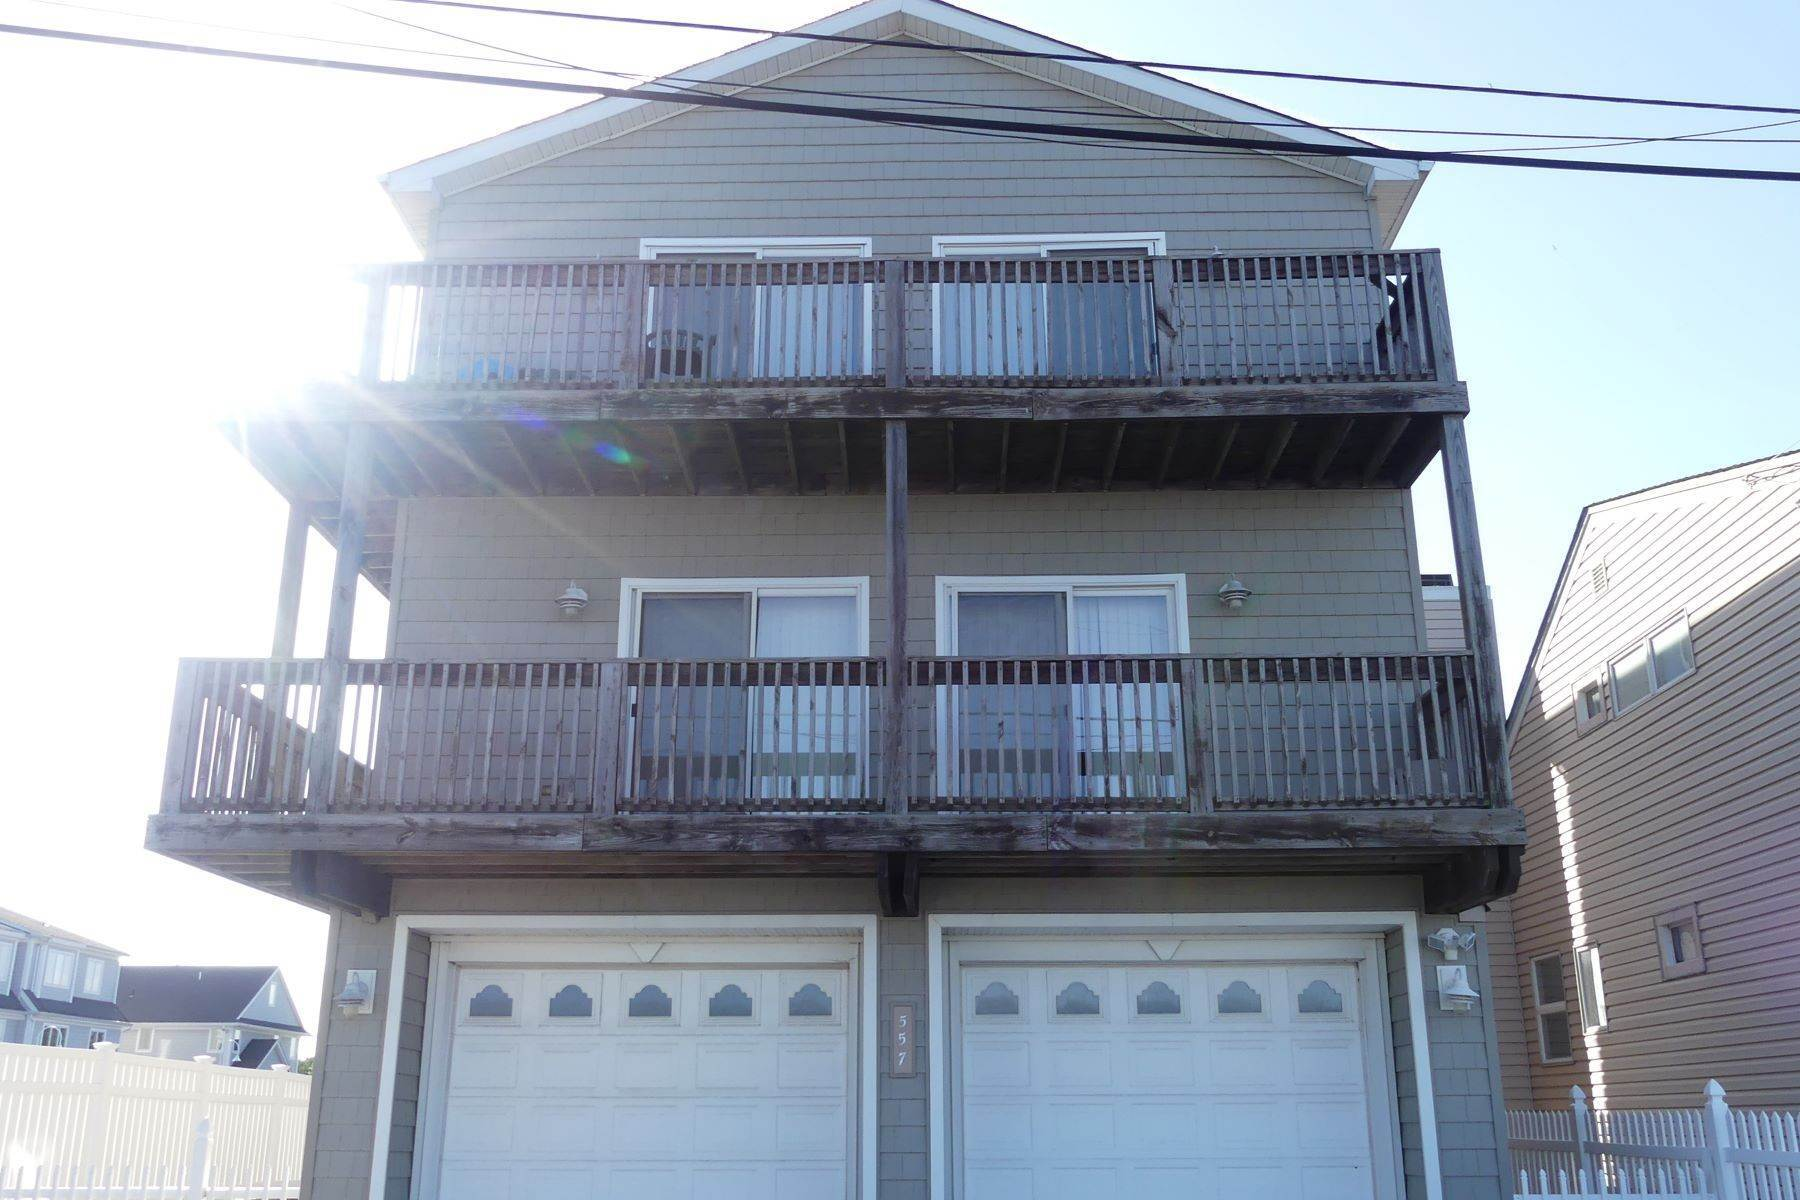 Single Family Homes à Weekly Rental in Somers Point 557 Launch Avenue Somers Point, New Jersey 08244 États-Unis